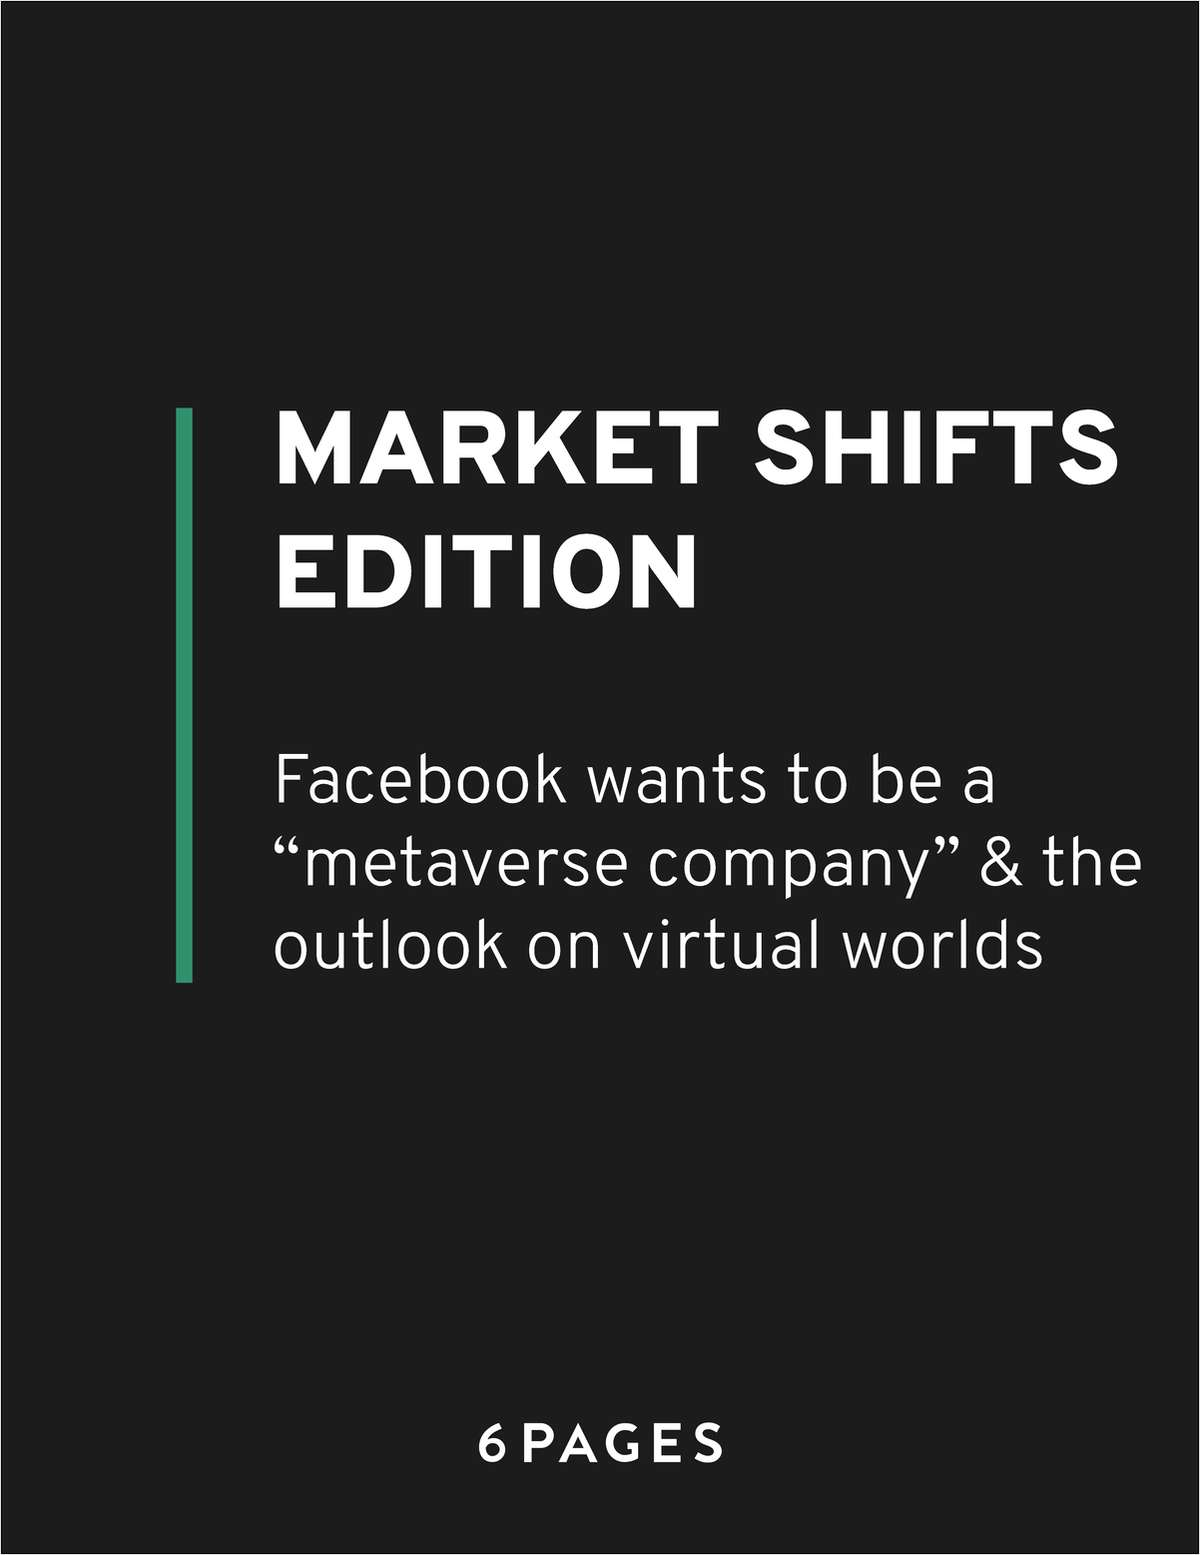 Market Shifts Edition: Facebook wants to be a metaverse company & the outlook on virtual worlds